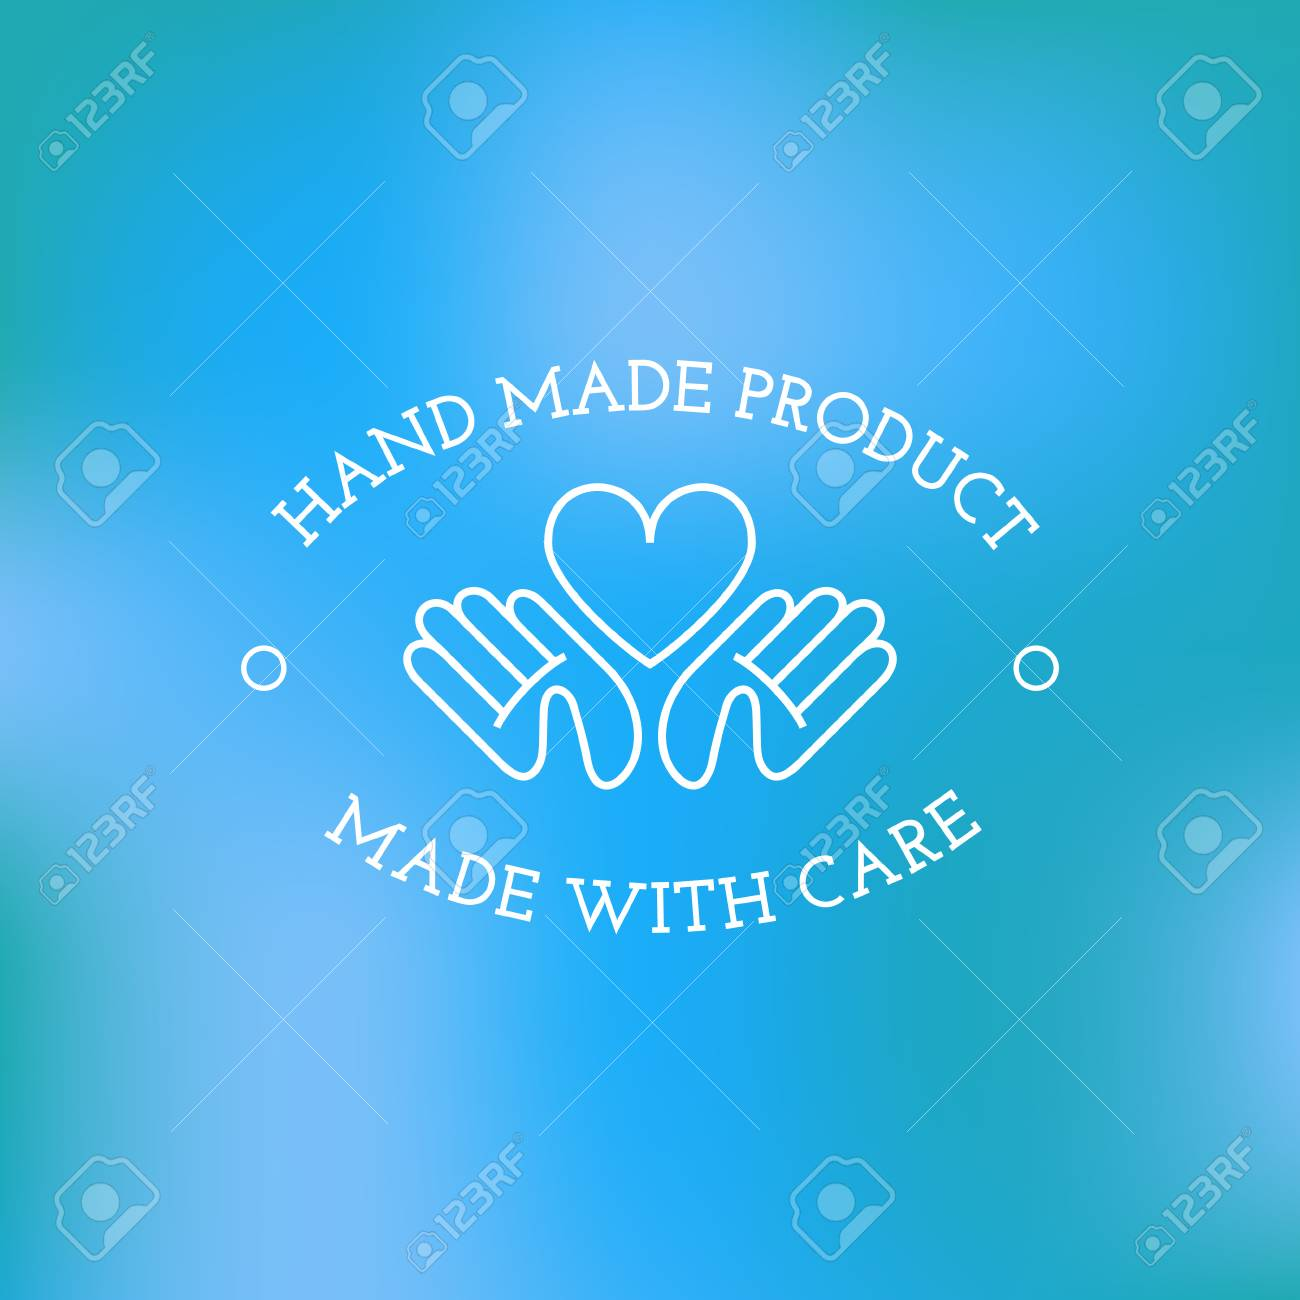 Label Design Template With Two Hands And Heart For Handmade Products In Outline Trendy Style